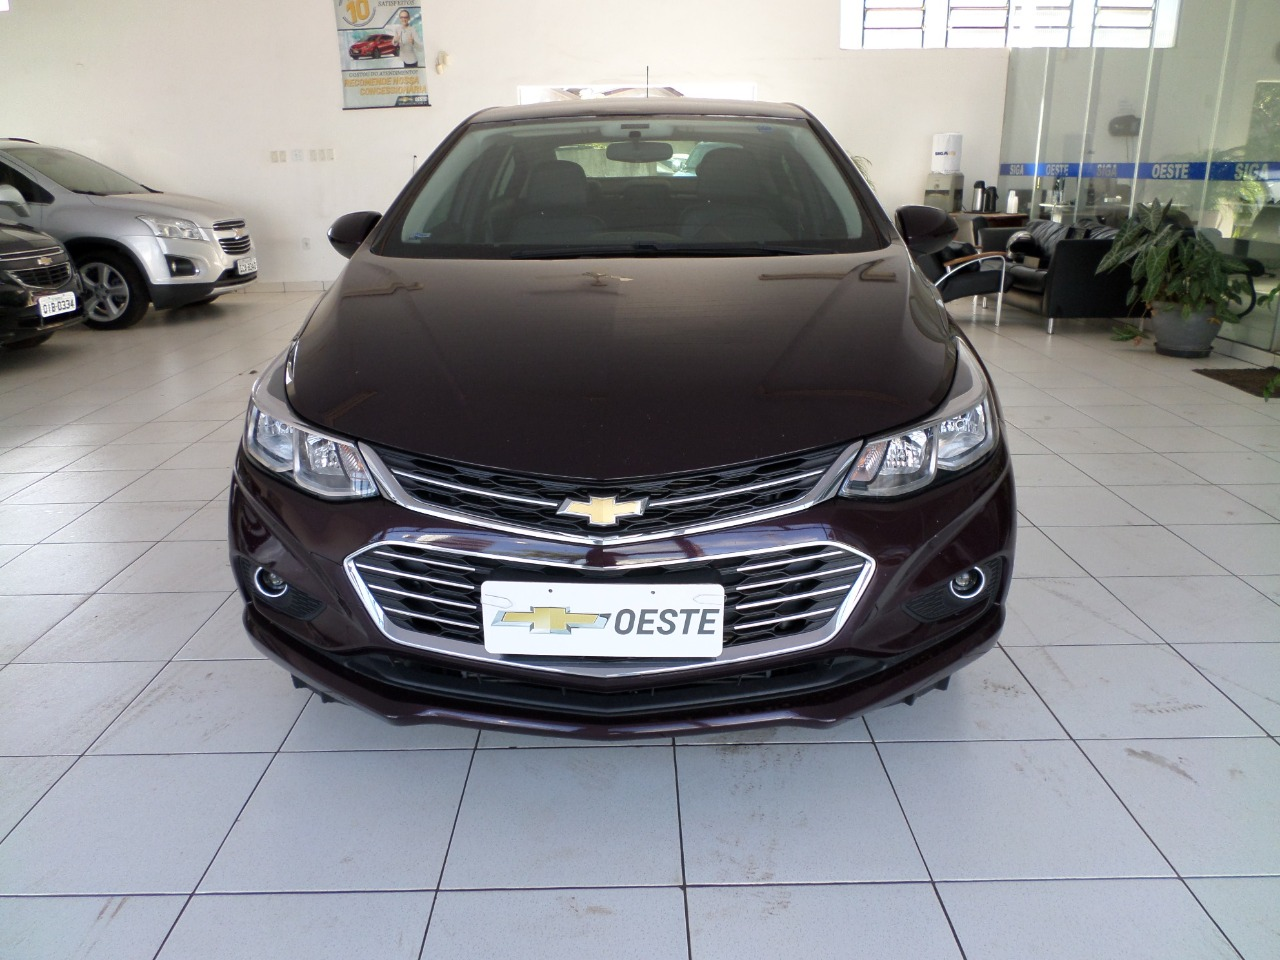 CHEVROLET CRUZE SD LT 1.4 TURBO 2017